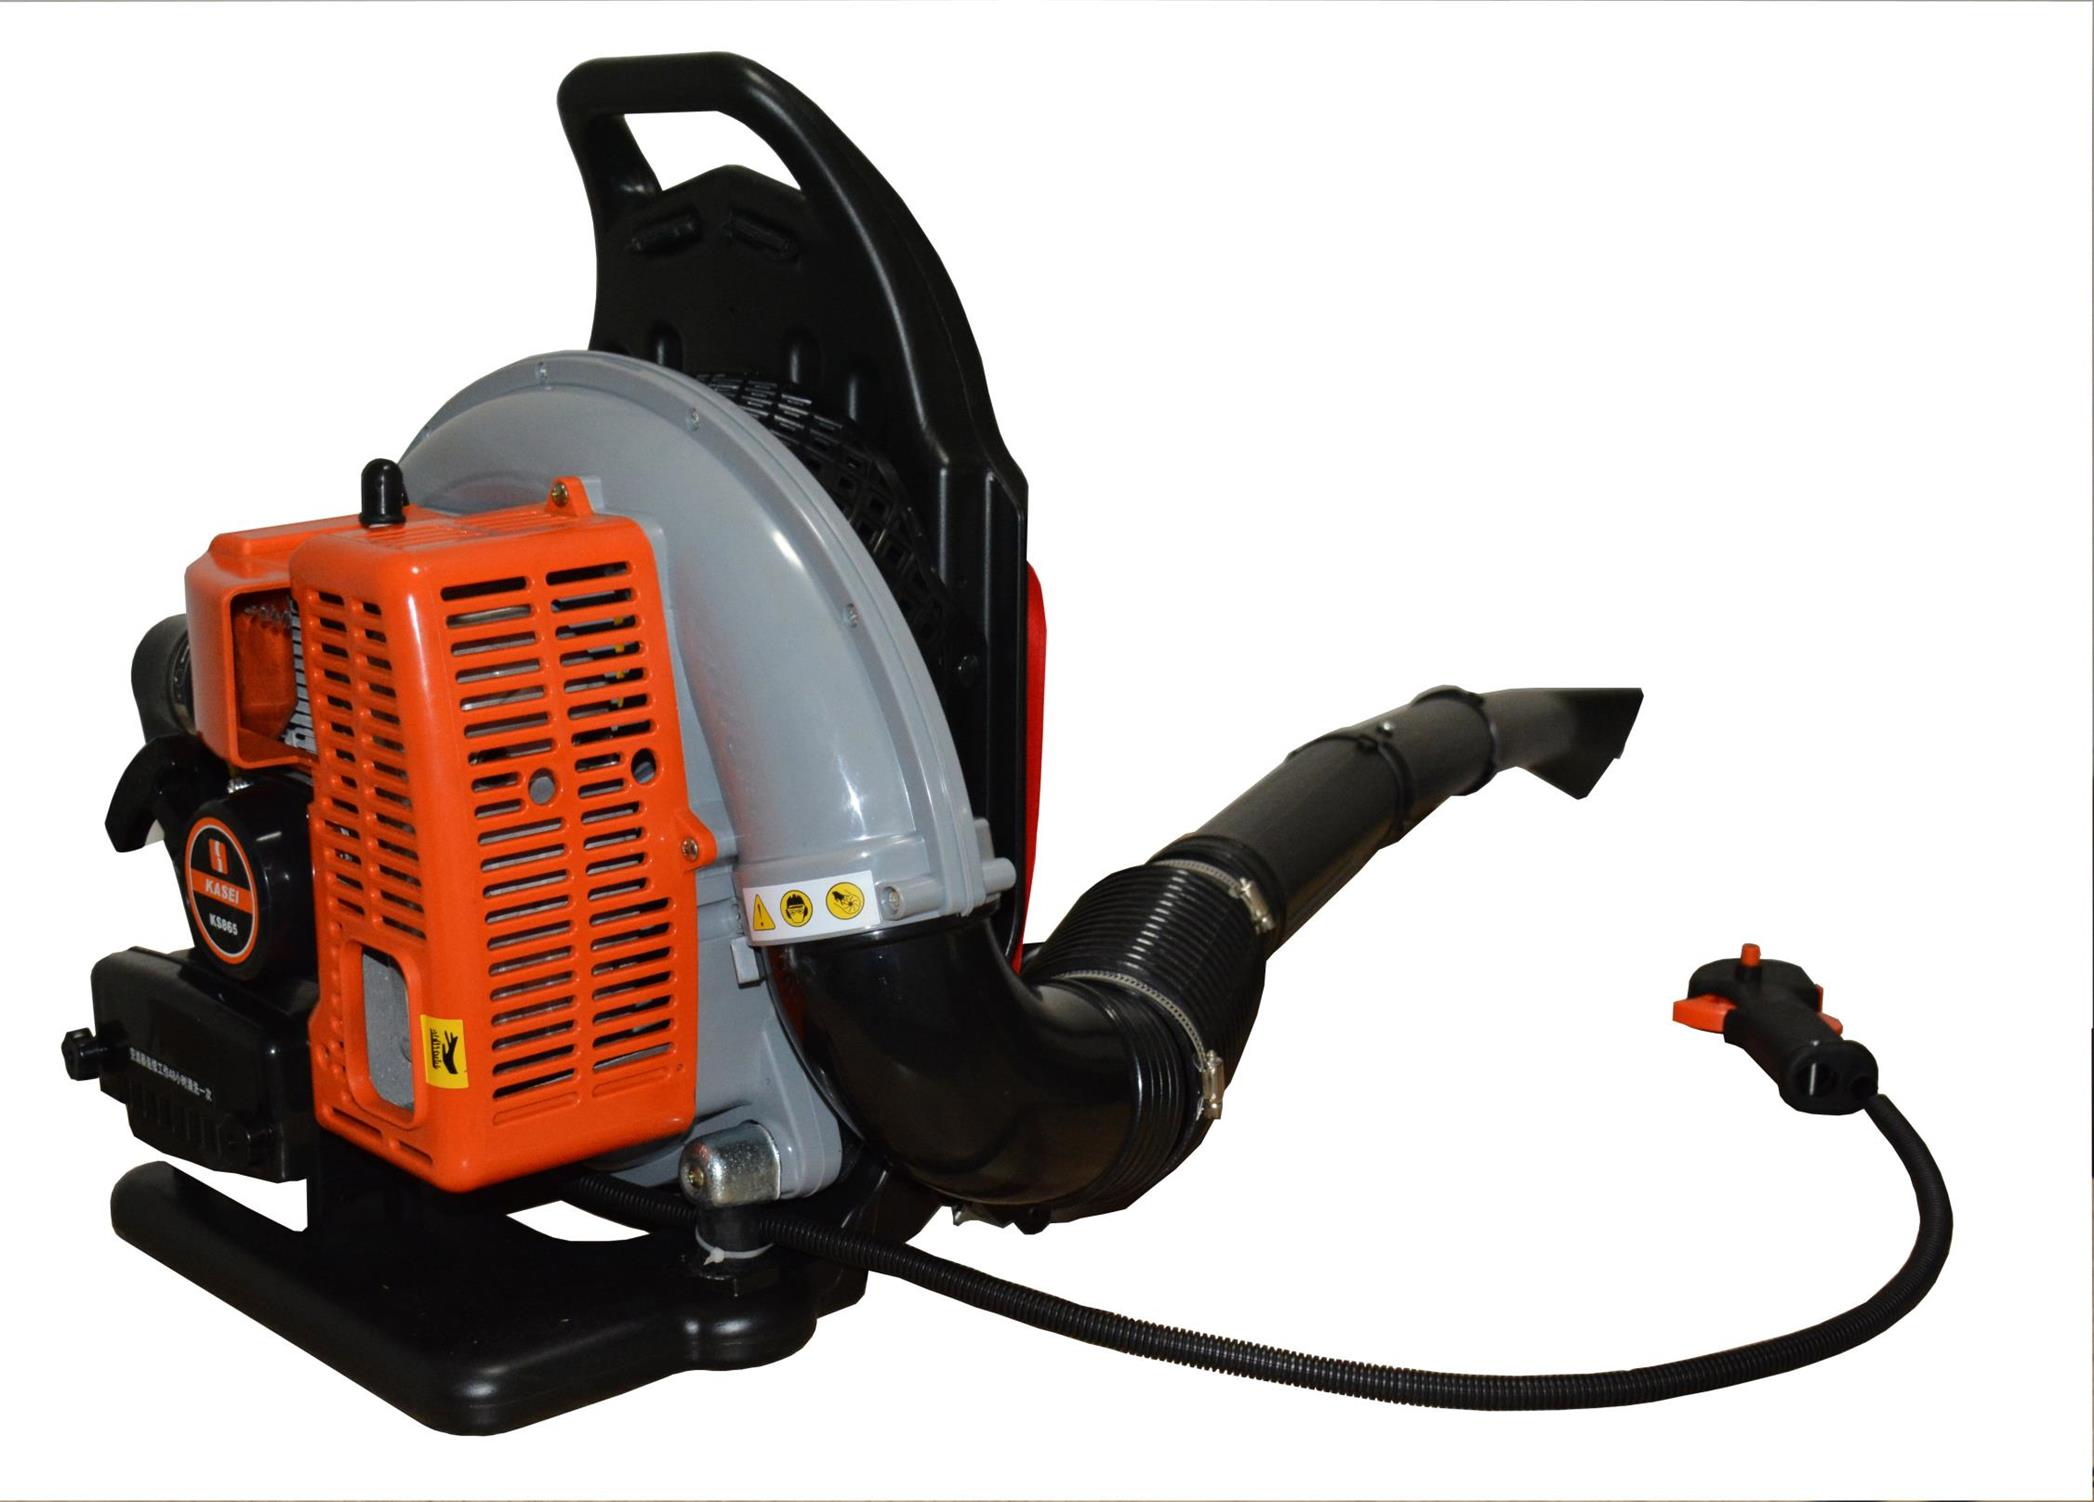 OUKE Two Stroke/Four Stroke Backpack Blower Work Video